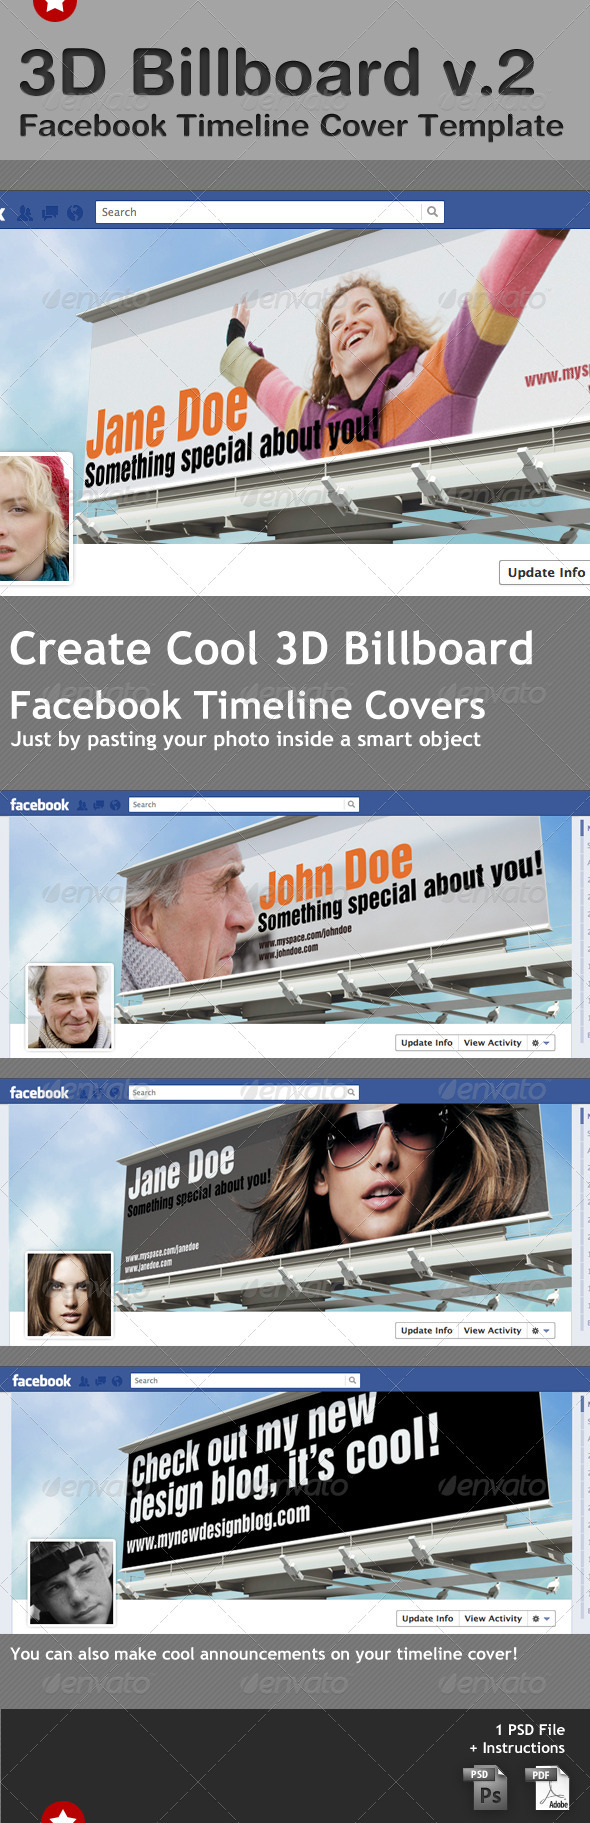 Billboard Facebook Timeline Cover Template - Facebook Timeline Covers Social Media